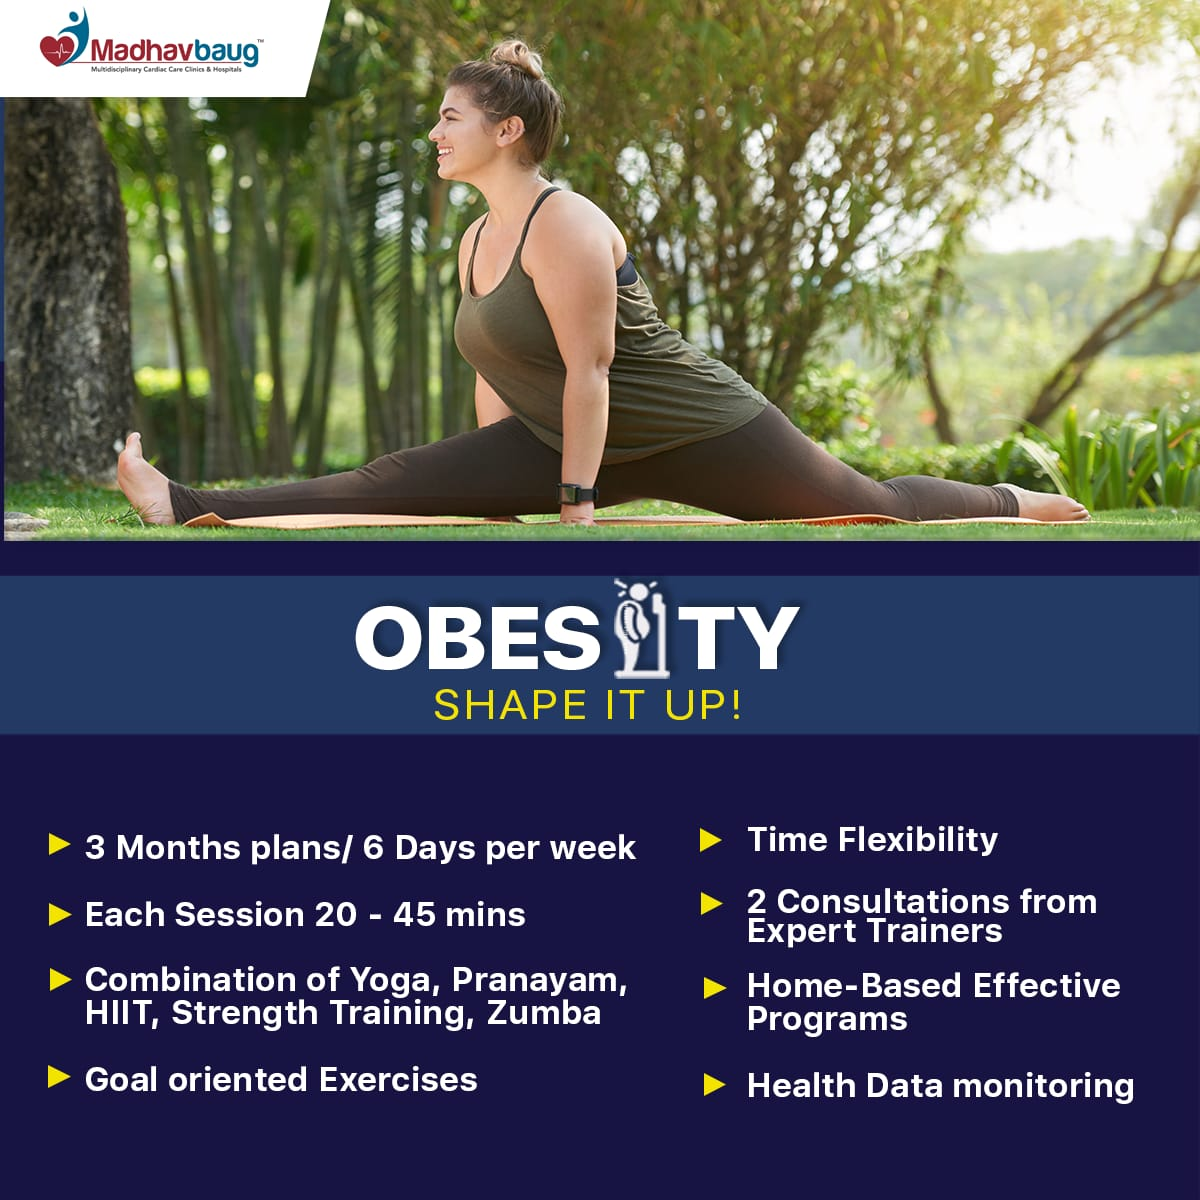 OESITY exercies Plan